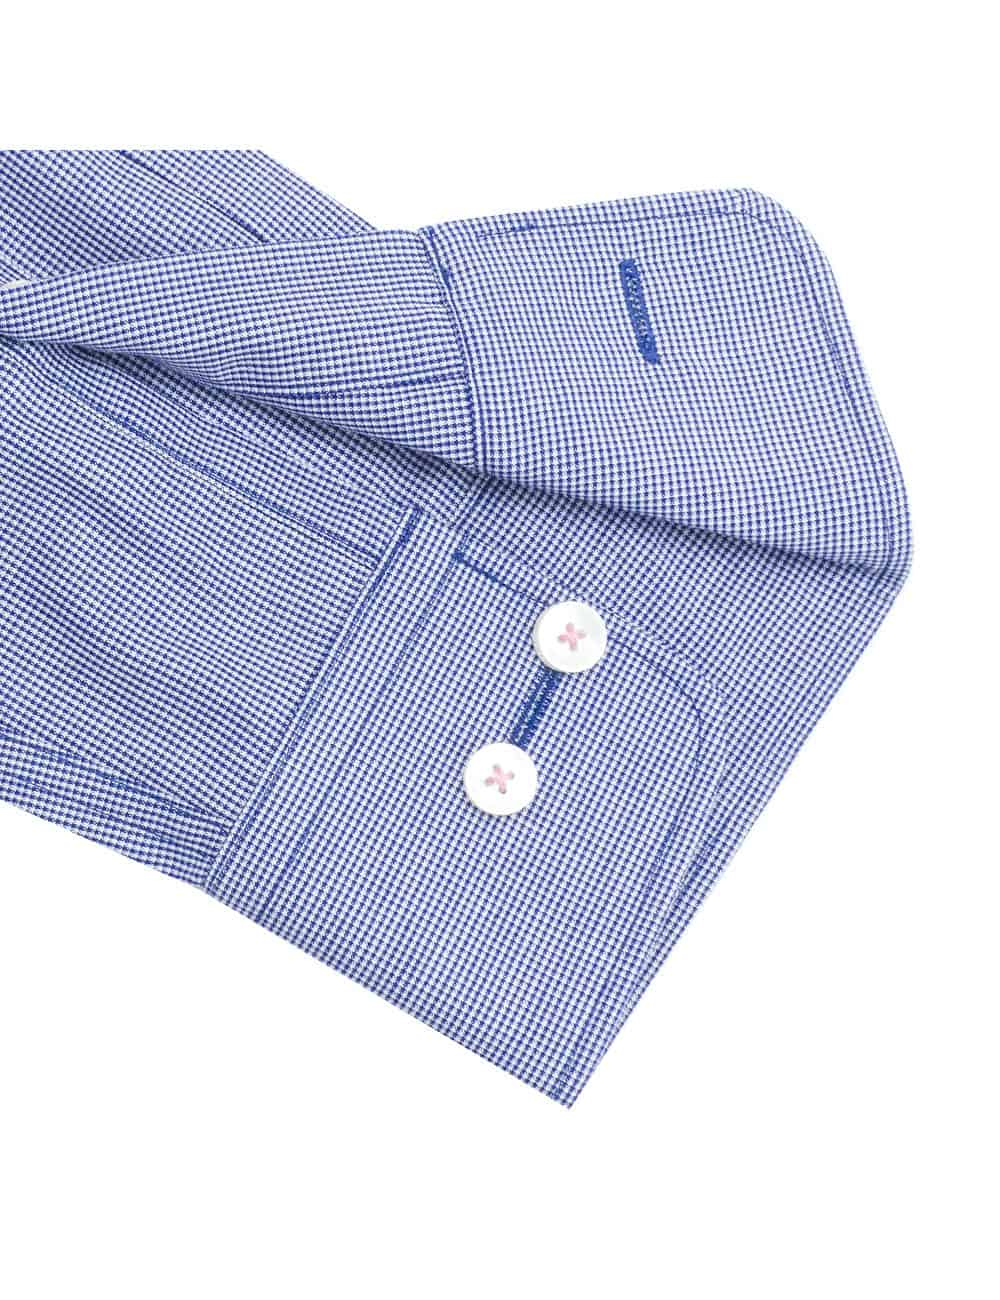 Tailored Fit Navy and White Micro Checks Eco-ol Bamboo Blend Wrinkle Free Long Sleeve Single Cuff Shirt TF2B4.16